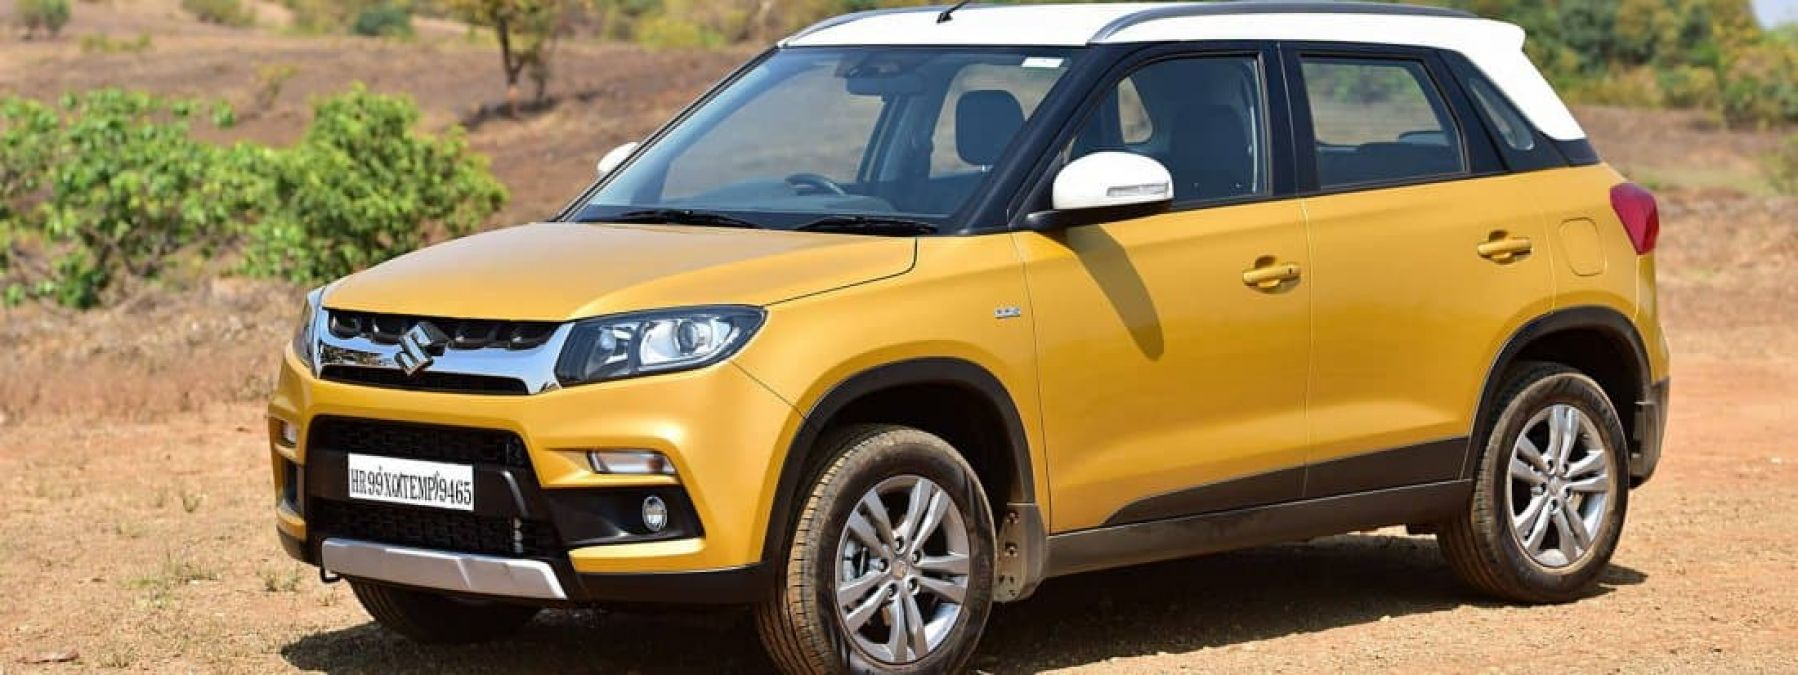 Image result for Maruti to be launch this car with great features in 2020